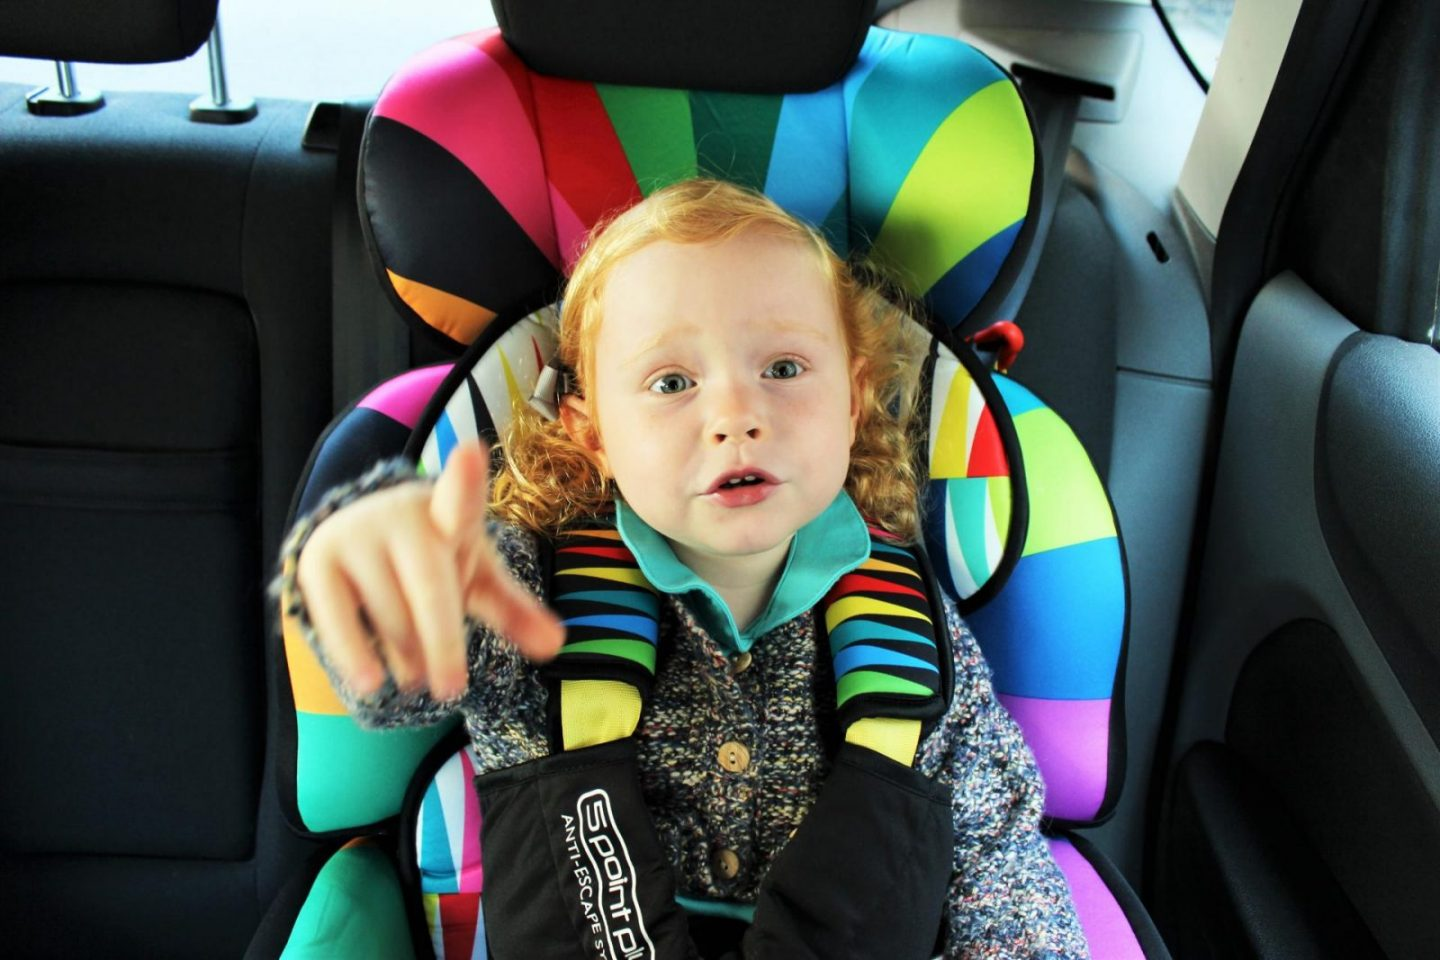 THREE OF THE BEST MINI MPVS FOR FAMILIES